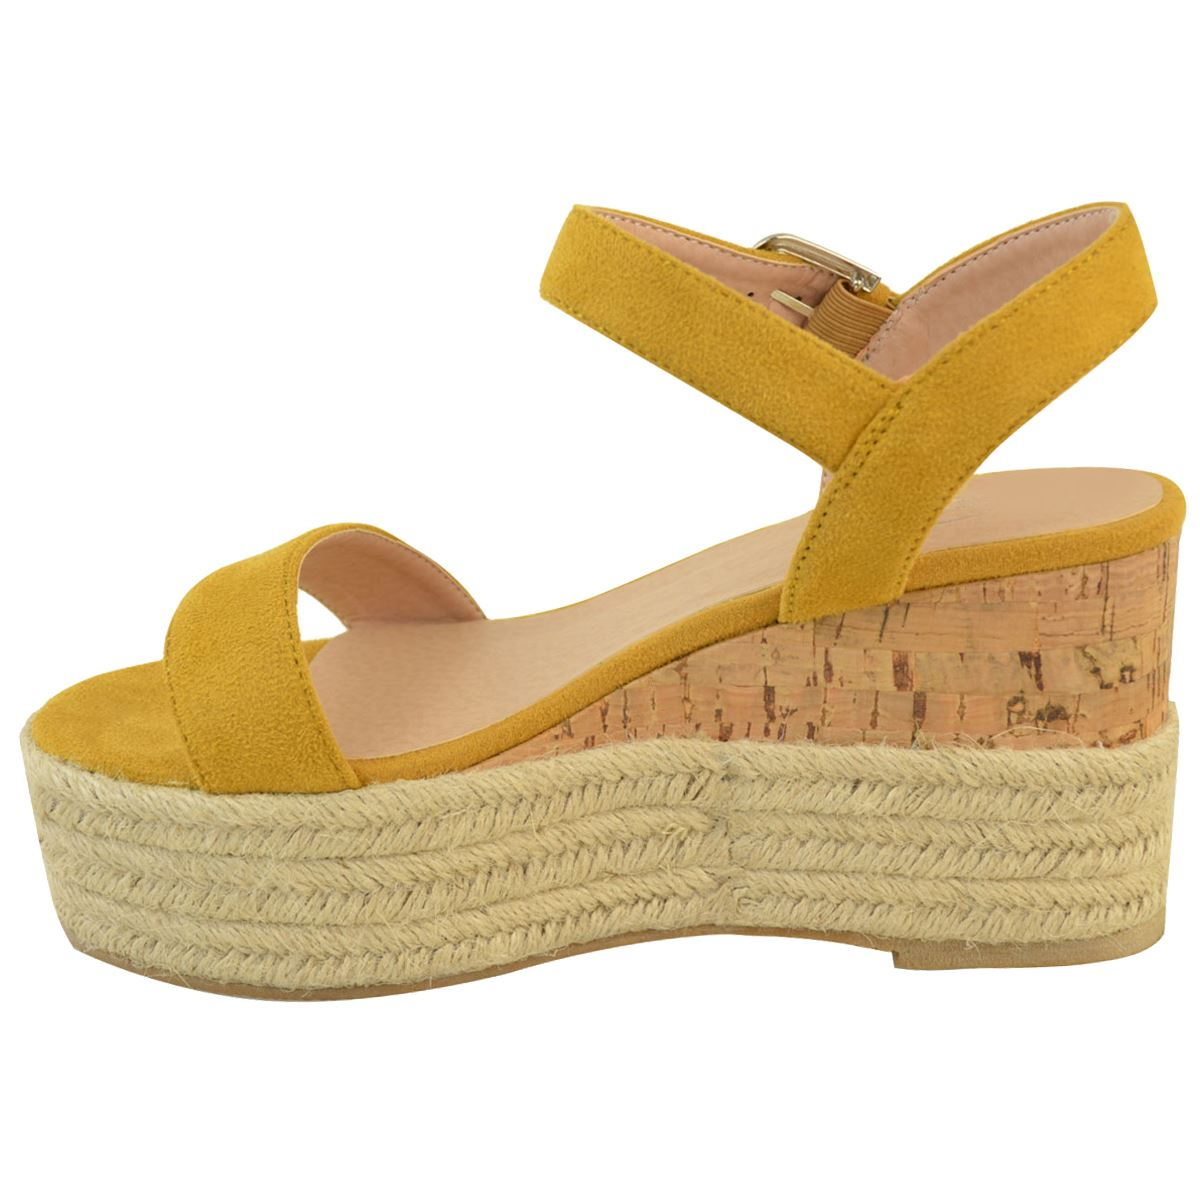 Womens-Ladies-Summer-Platform-Ankle-Strappy-Wedges-Open-Toe-Sandals-Shoes-Size thumbnail 7